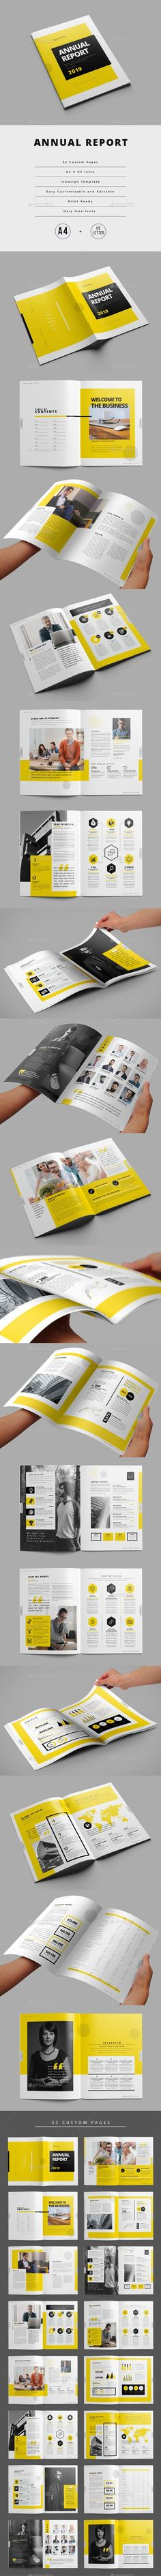 Annual Report Corporate Brochure Template by Travel Brochure Template, Brochure Layout, Corporate Brochure, Company Profile Template, Company Profile Design, Indesign Templates, Print Templates, Diagram Design, Ppt Design